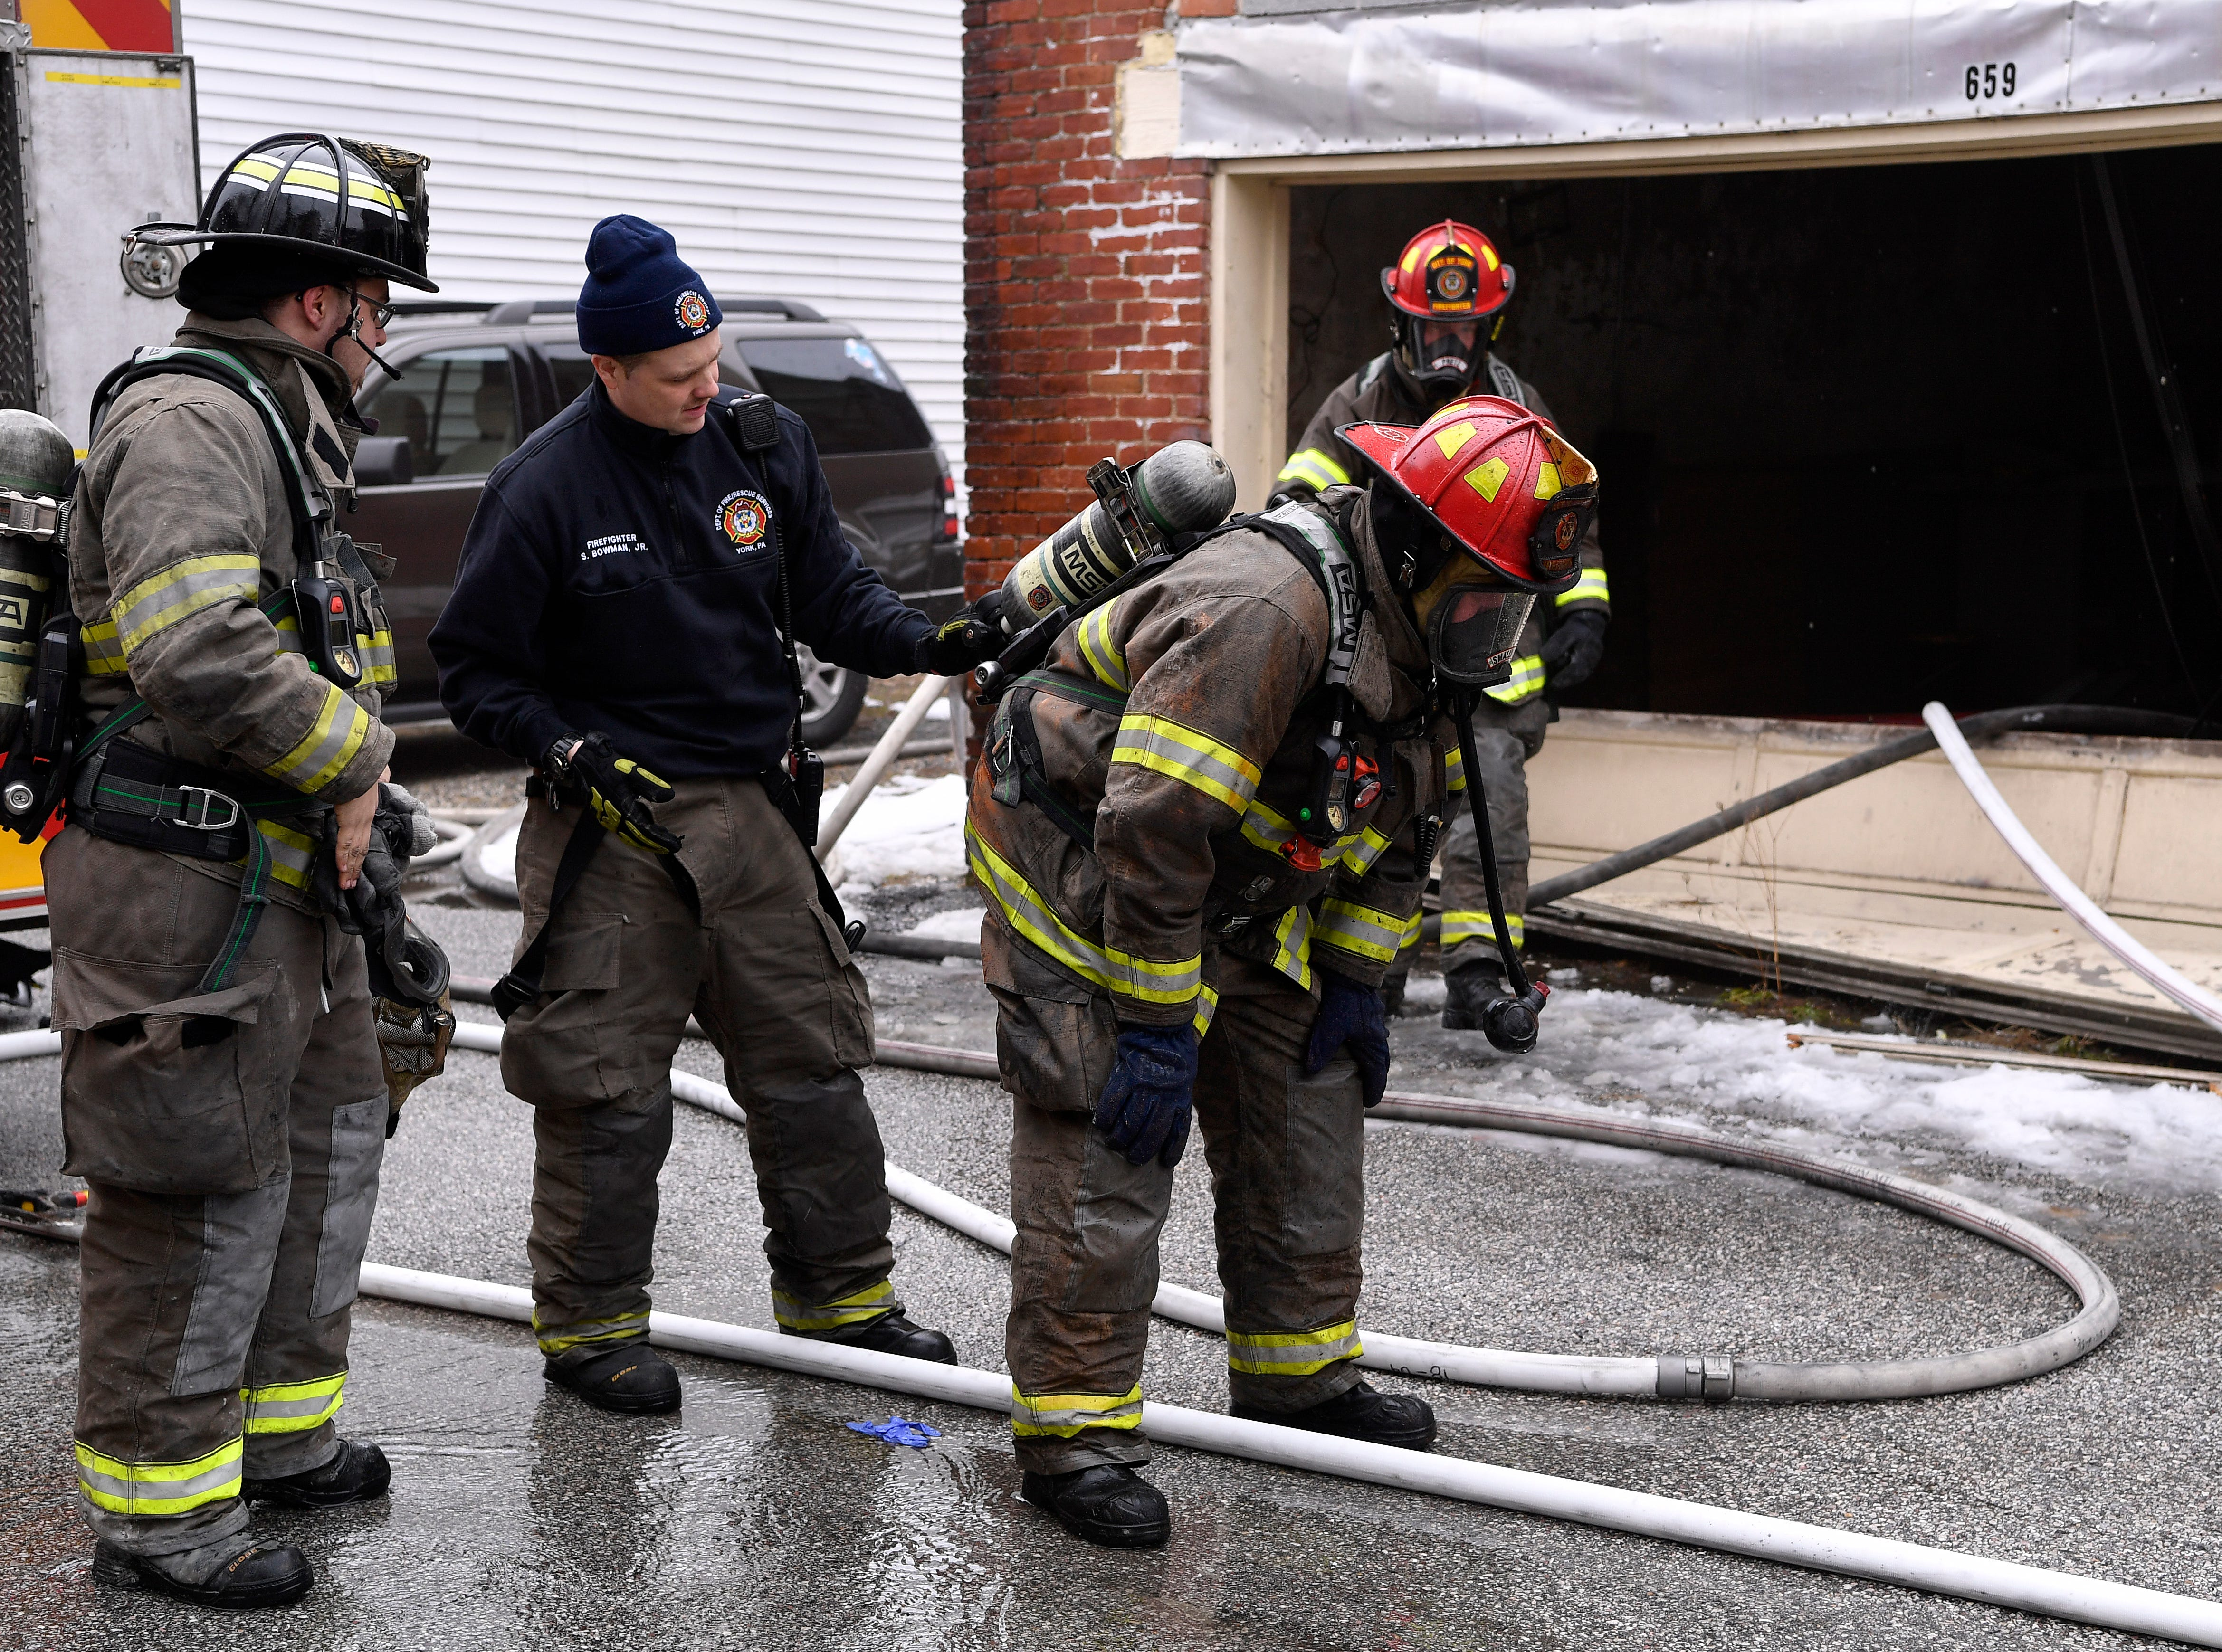 Firefighters battle a stubborn blaze in a two-story garage in the 600 block of W. Philadelphia Street, Sunday, March 10, 2018.